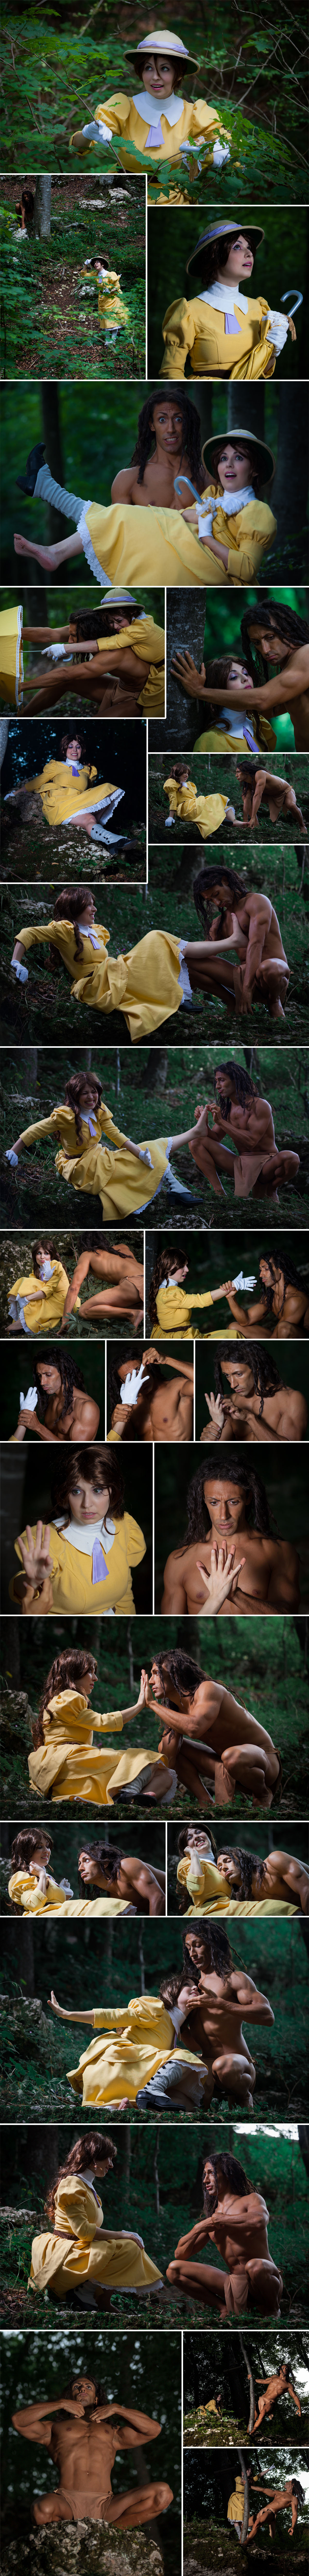 Tarzan meets Jane by daguerreoty-pe